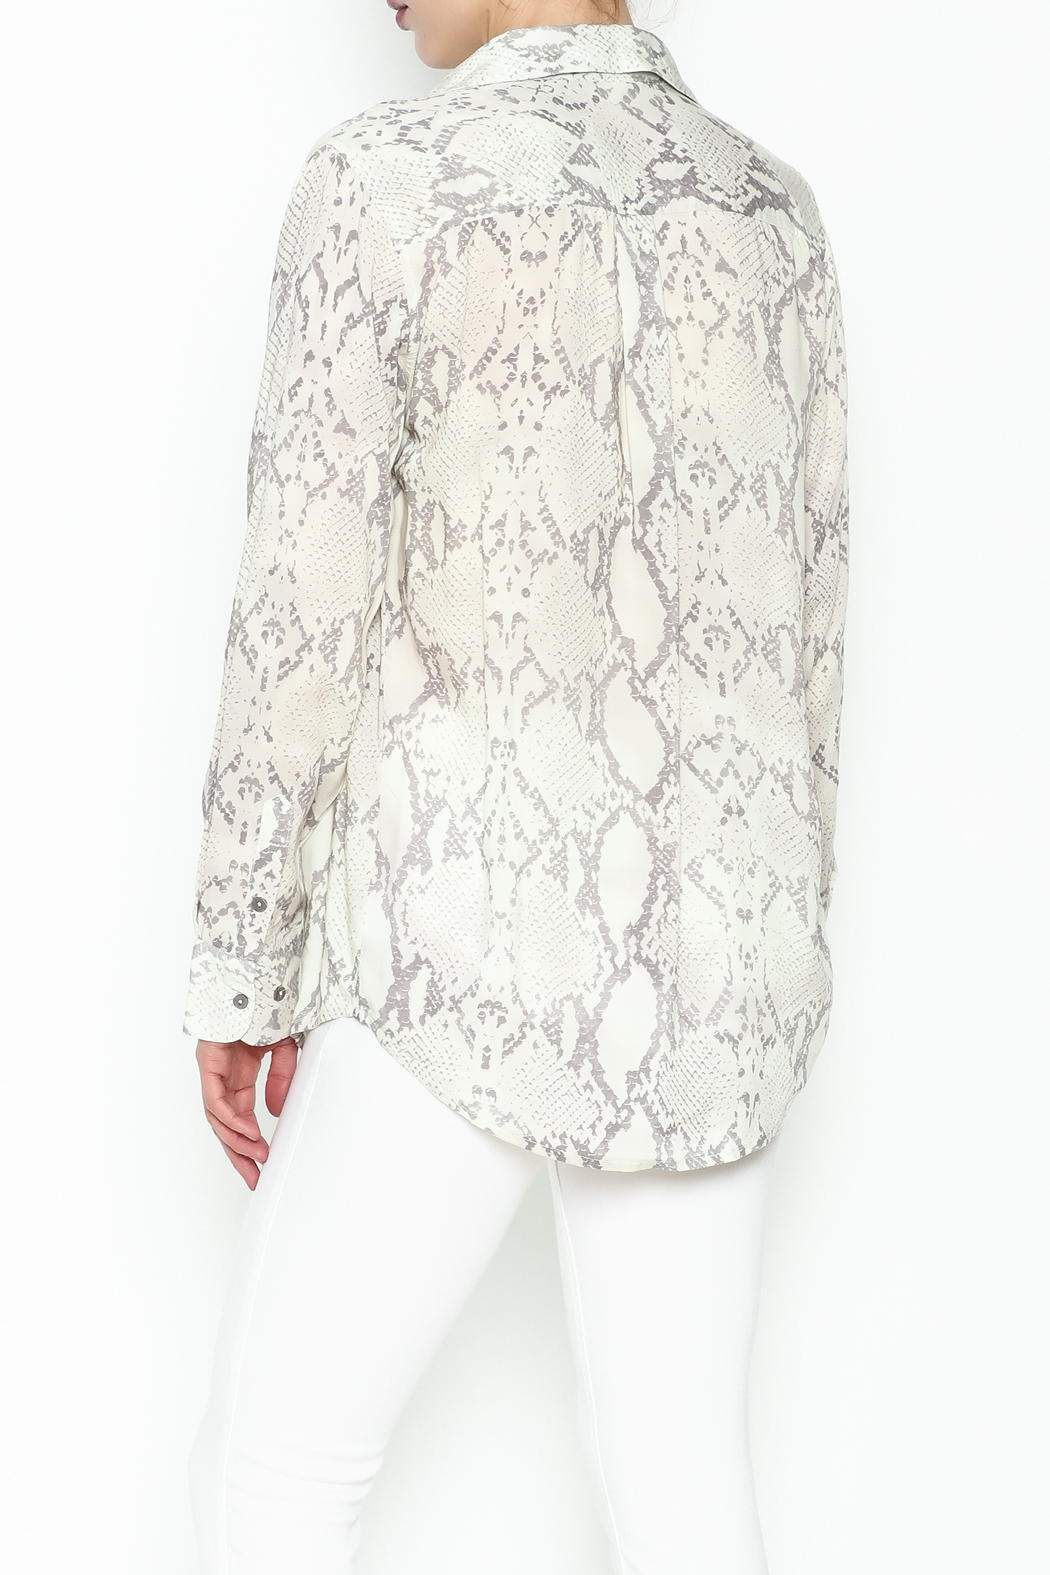 Olivaceous Python Lace Up Top - Back Cropped Image